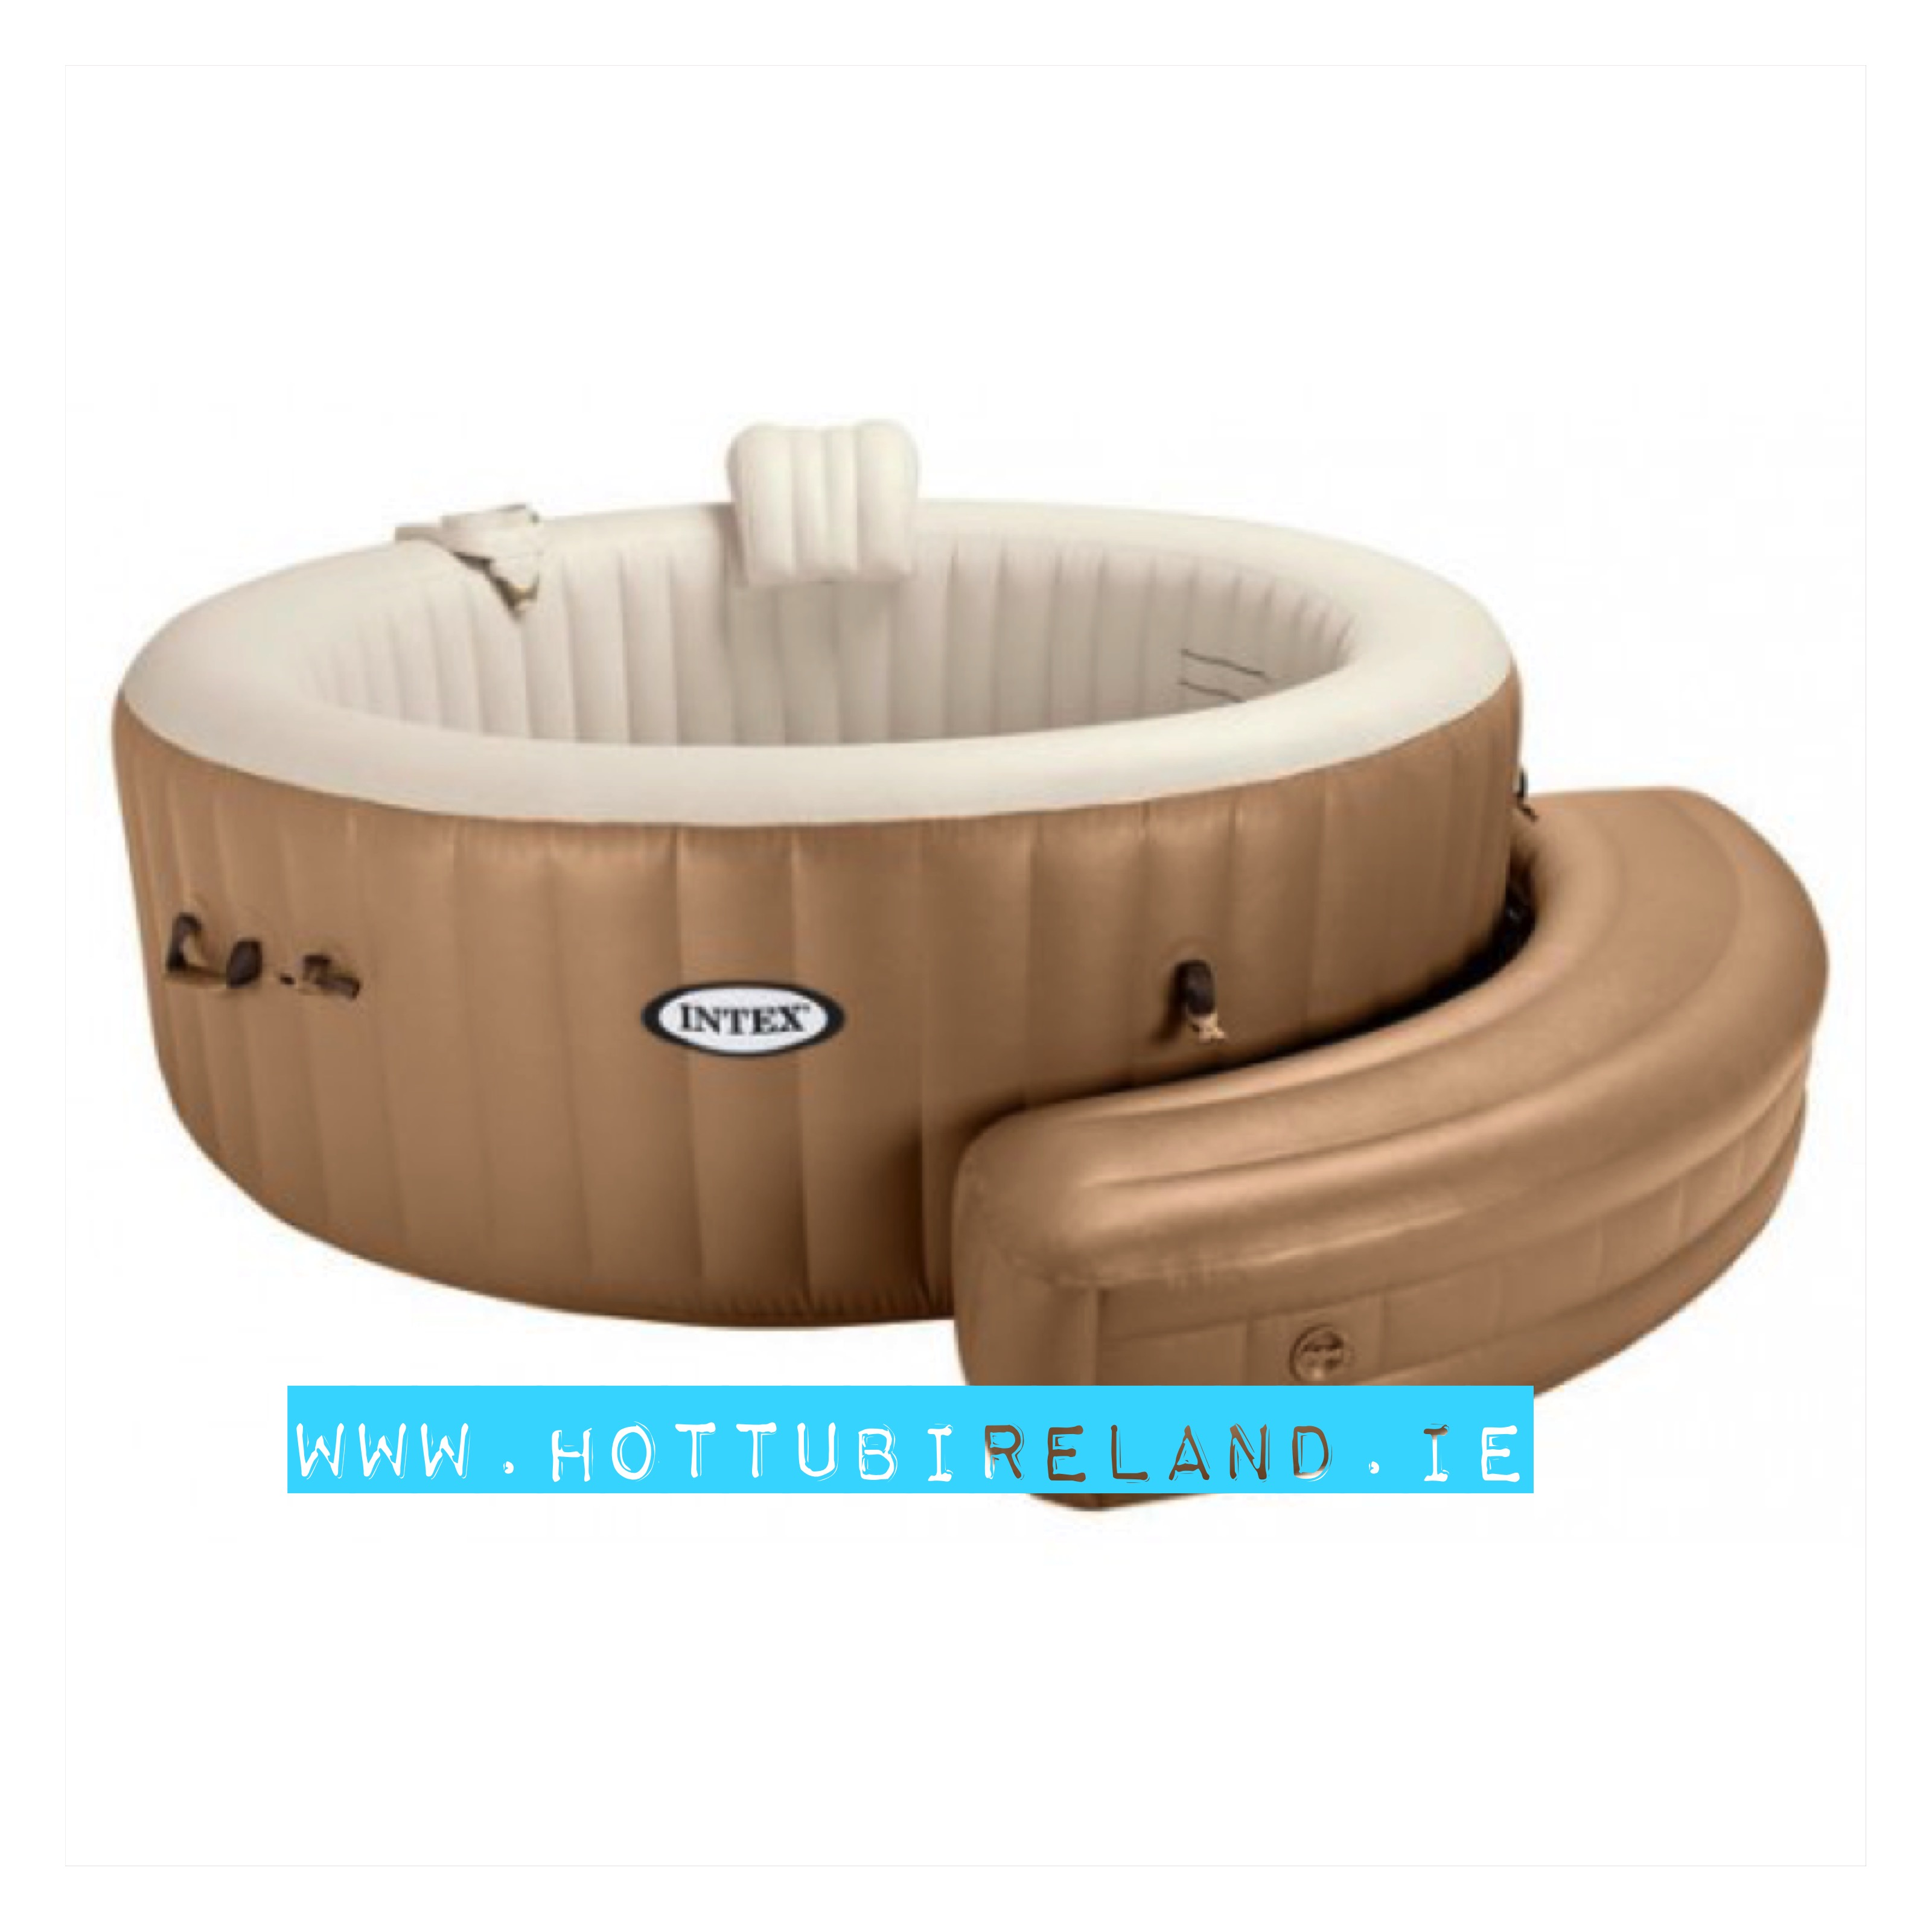 Jacuzzi Pool Replacement Parts Hot Tub Accessories For Intex And Lay Z Spa Hot Tub Ireland